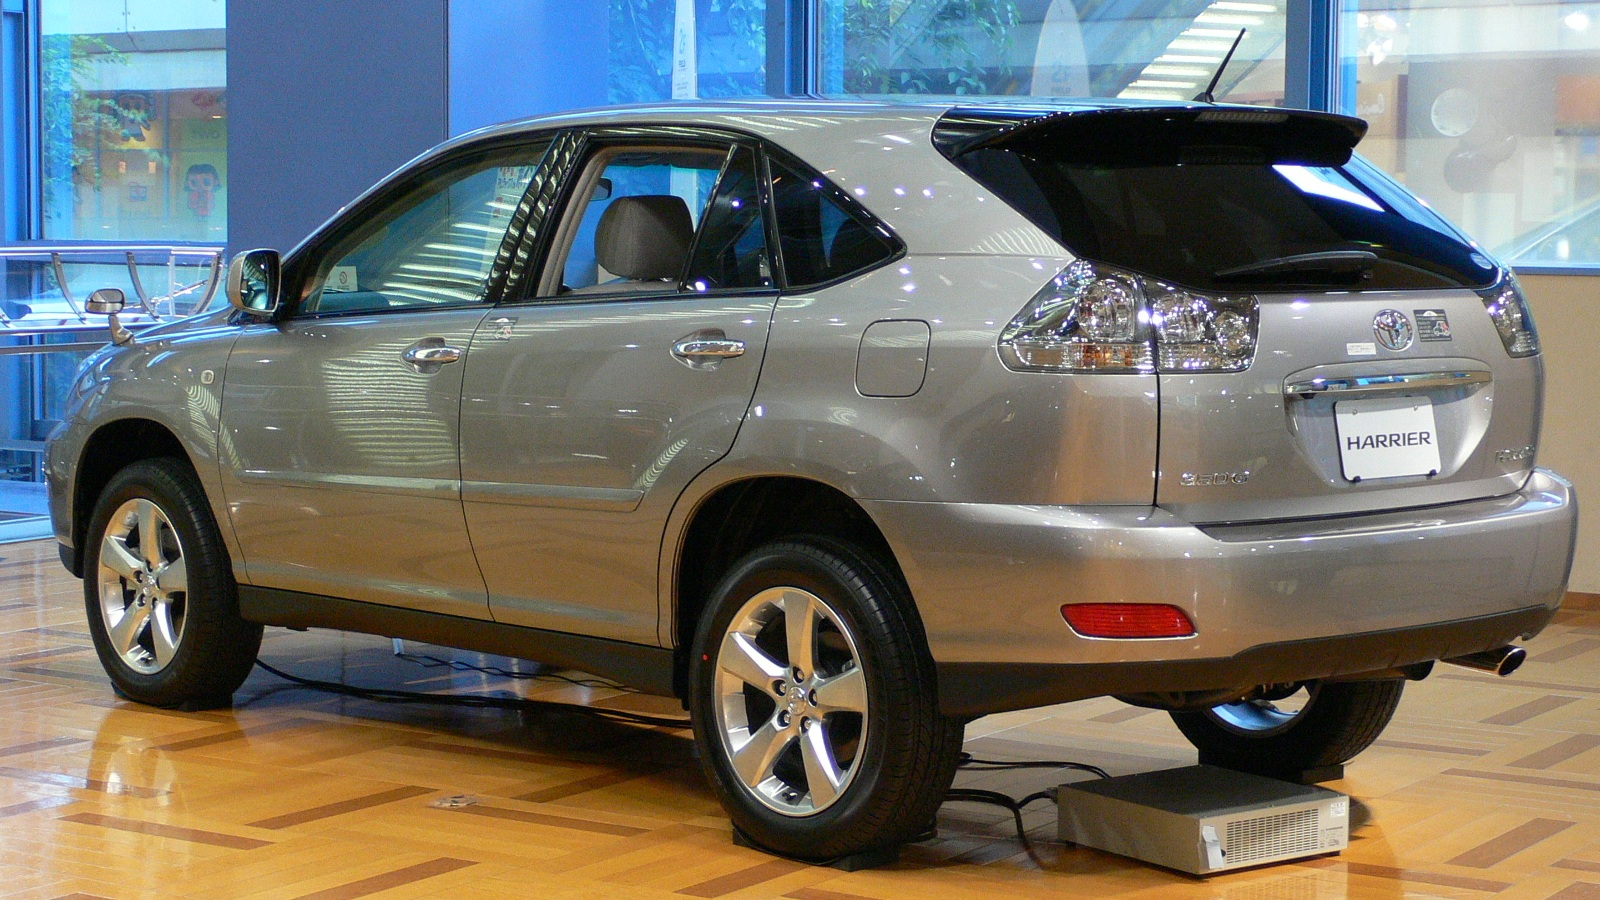 Toyota Harrier Car Images